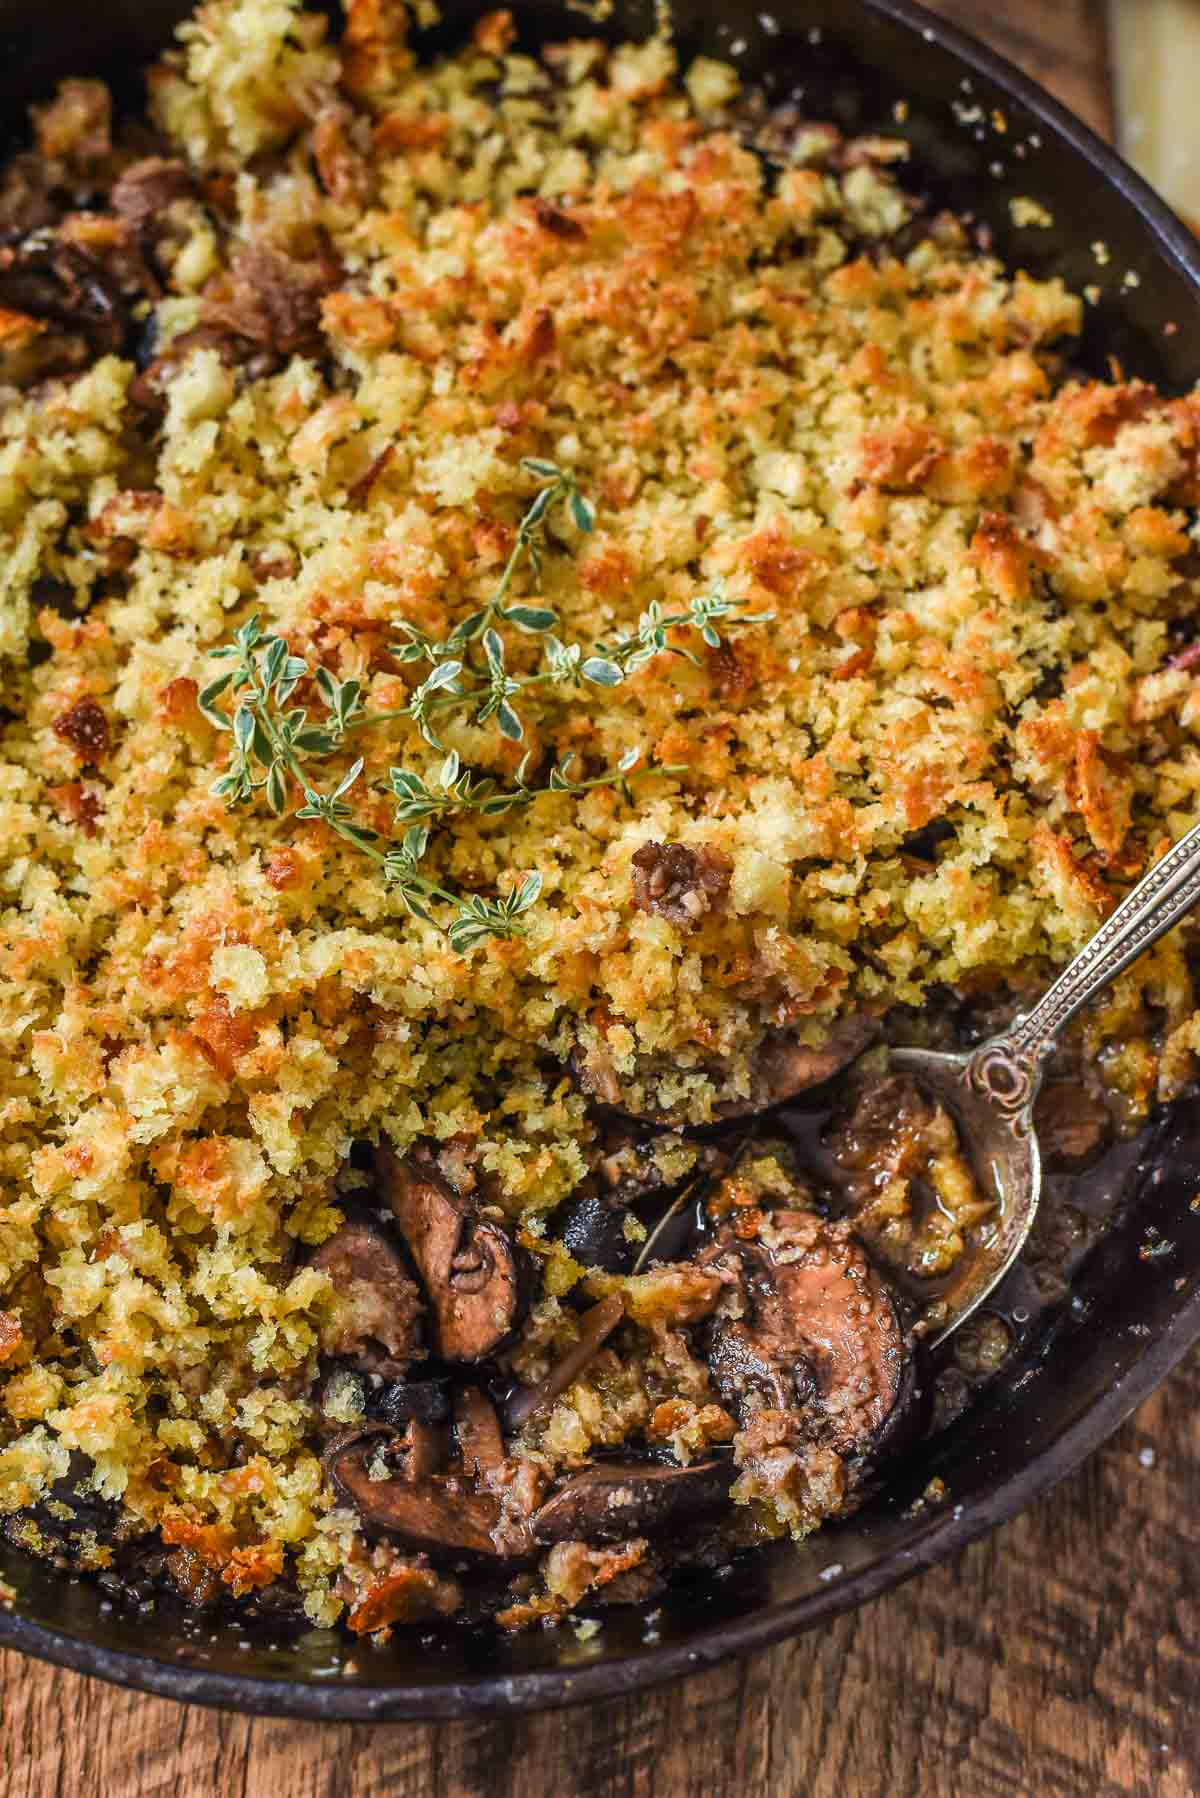 Baked Mushrooms with Red Wine and Parmesan Crumbs